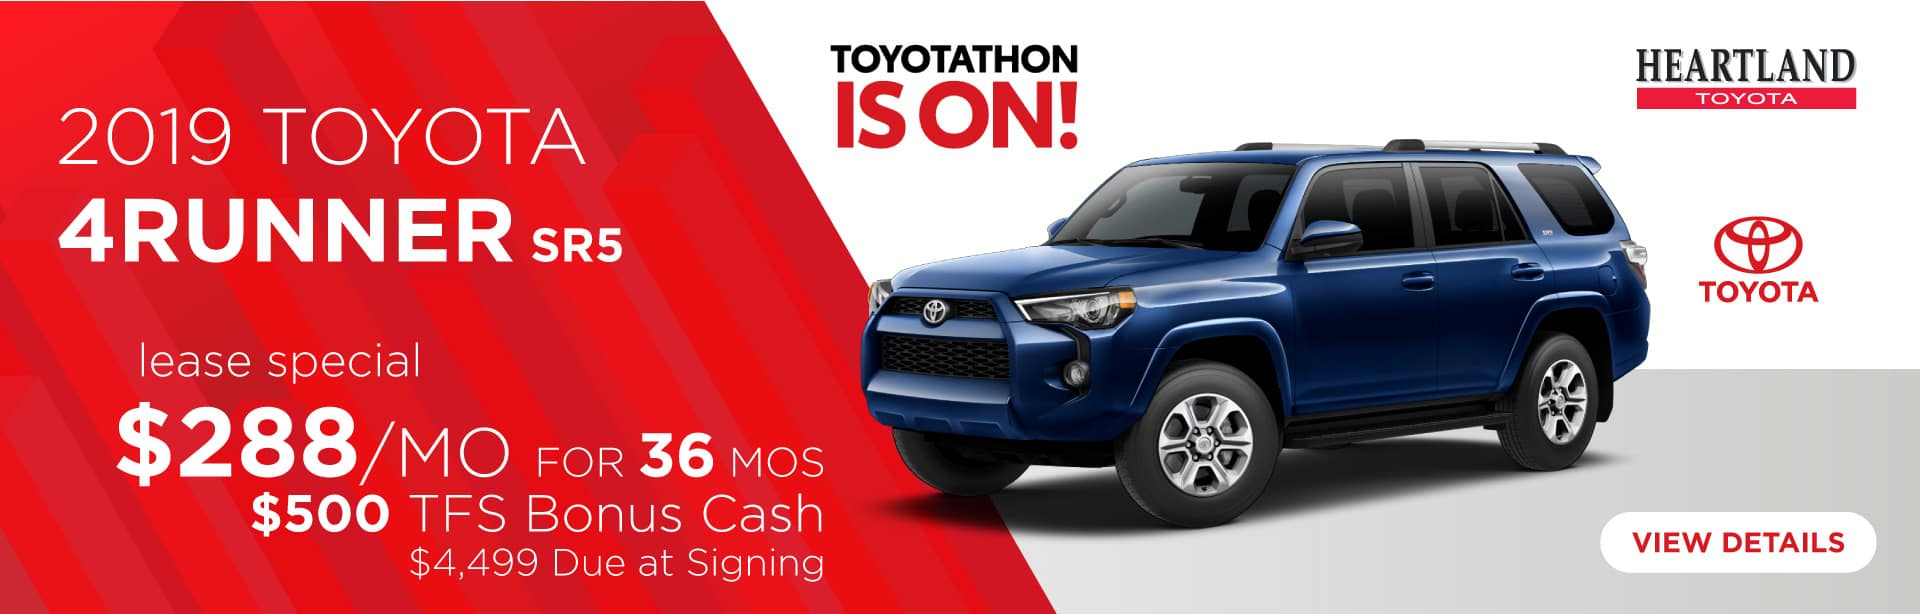 2019 Toyota 4Runner SR5 $288/mo for 36 months* TFS Bonus Cash: $500 $4,499 Due at Signing    *Offer valid on 2019 Toyota 4Runner SR5. $288 per month for 36 months. TFS Bonus Cash: $500. Lease with $4,499 due at signing; includes a $695 acquisition fee. Valid on VIN: JTEBU5JR5K5724629, JTEBU5JR5K5730320, JTEBU5JR7L5746620. MSRP starting at $37,780. Lease is through TFS. Subject to credit approval. No Security deposit required. Excludes taxes, title, and fees. 36 monthly payments required. Not all lessees will qualify for lowest payment through participating lender. Residency restrictions apply. Lessee responsible for mileage over 10,000 miles per year at $0.15/mile per year. Option to purchase at lease end. A negotiable dealer documentary service fee of up to $150 may be added to the sale price or capitalized cost. Offer expires 1/2/2020.